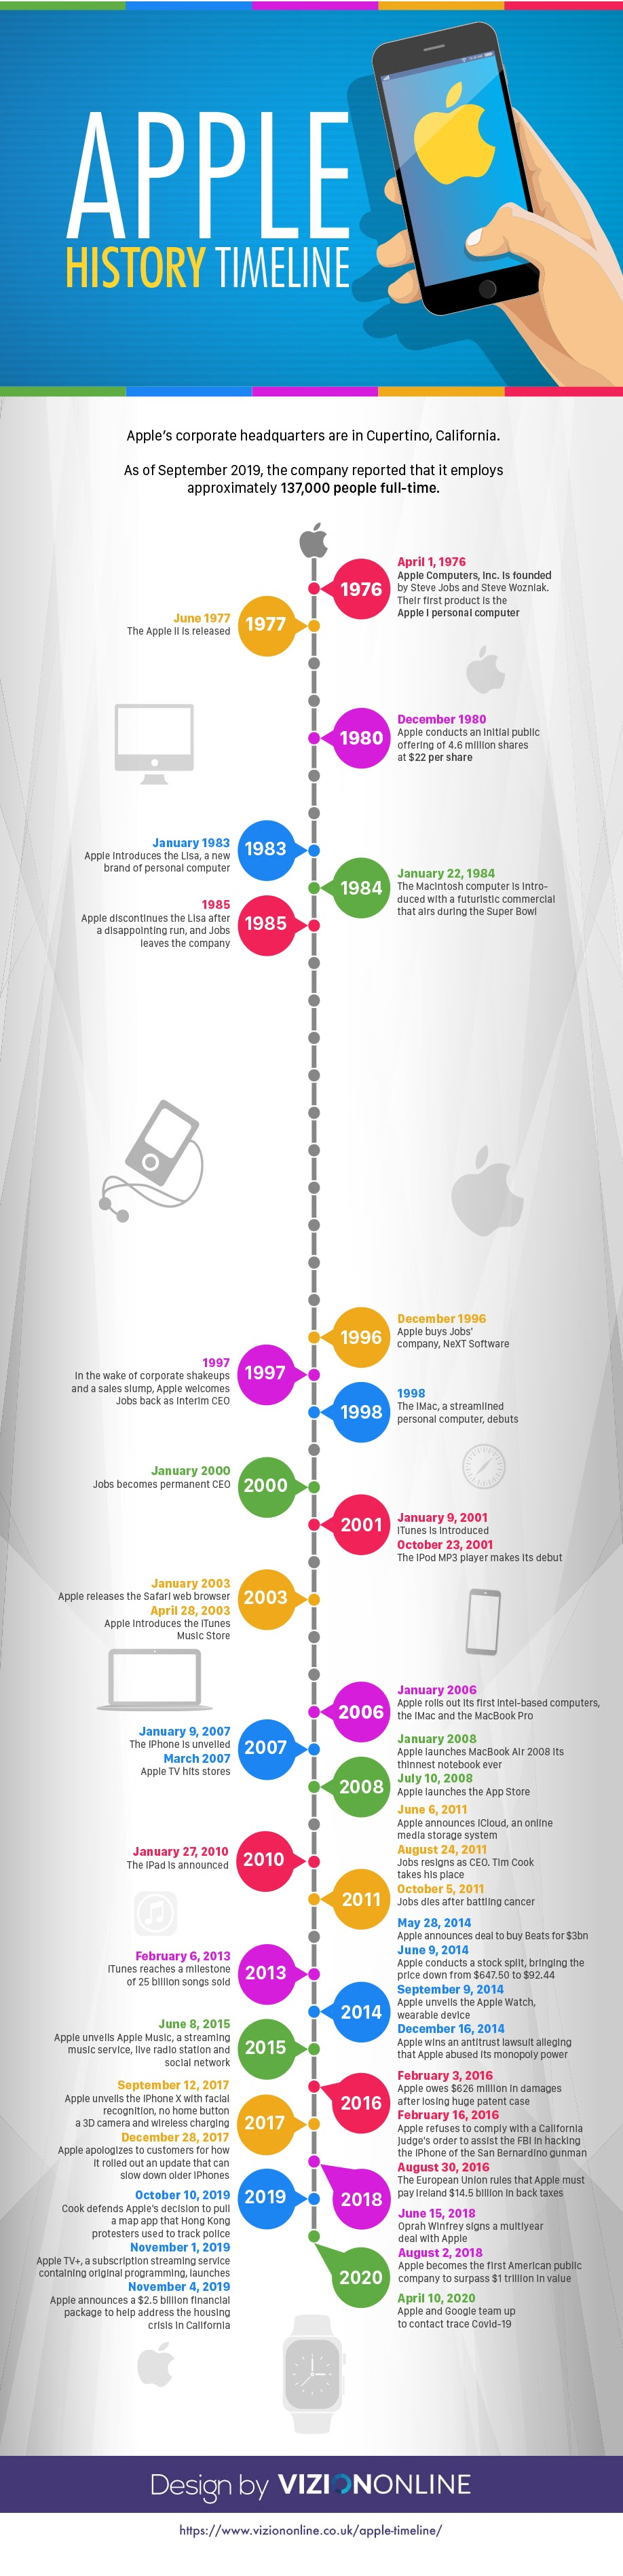 Apple History Timeline #infographic